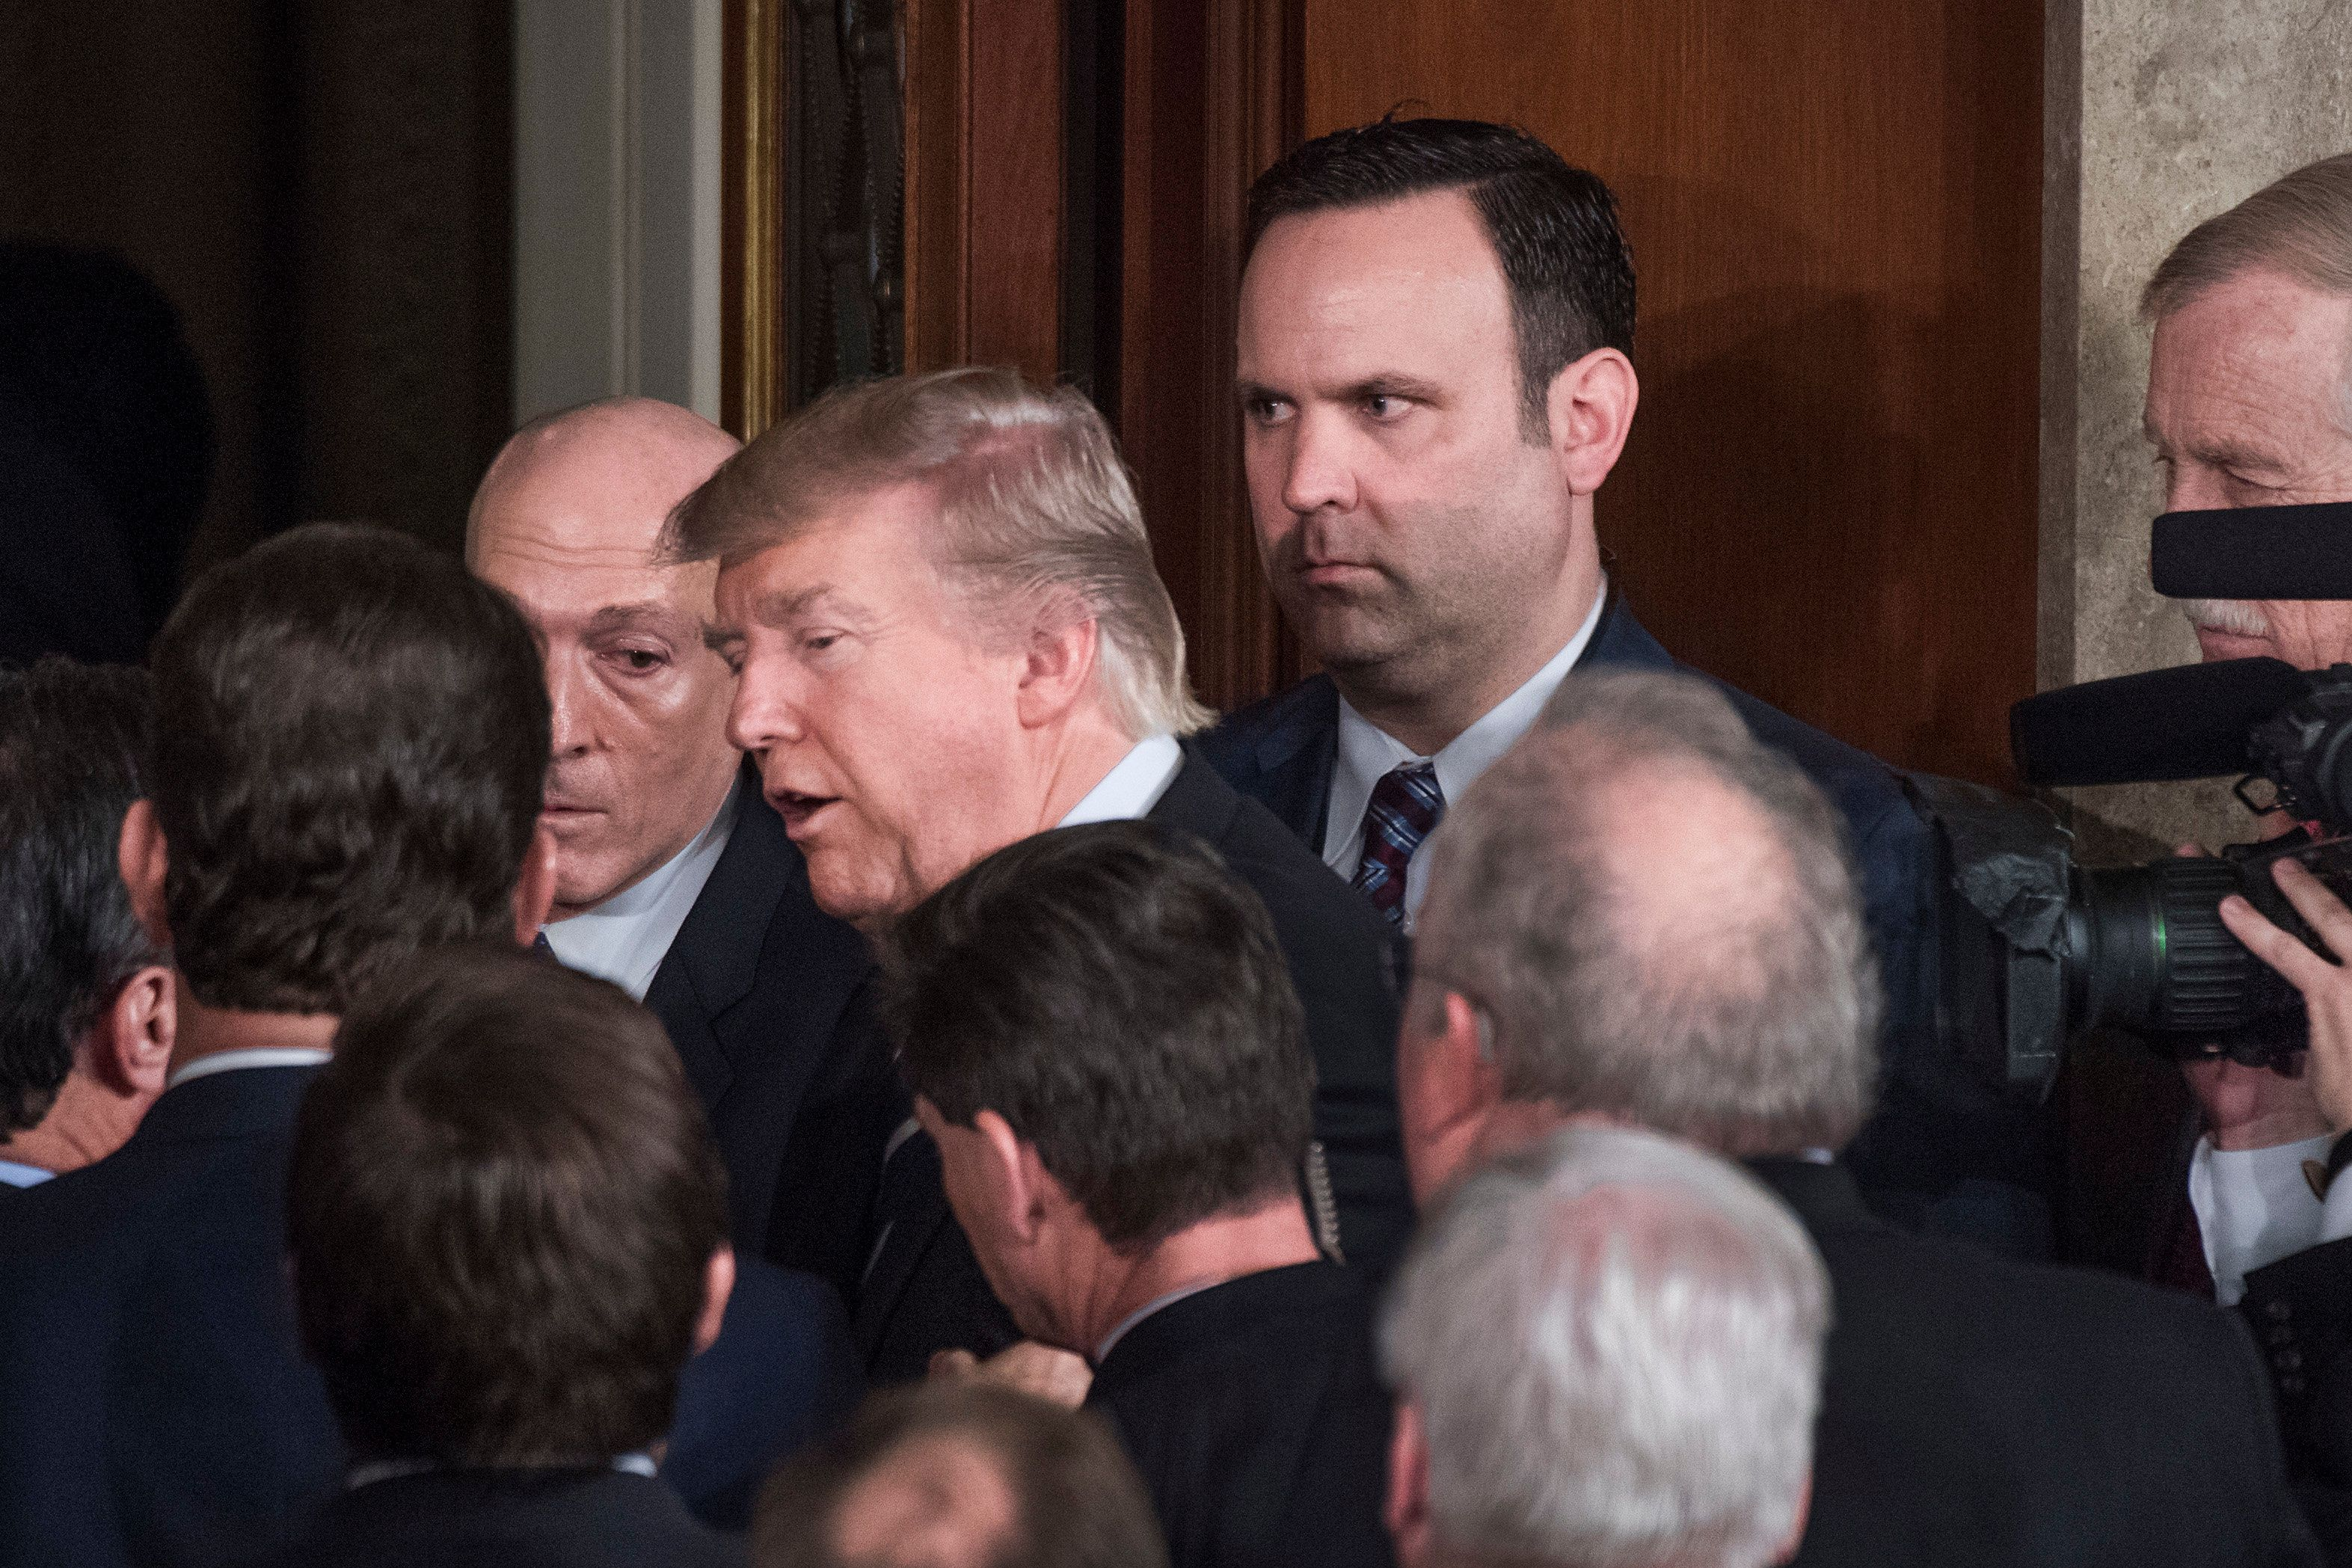 Dan Scavino with President Donald Trump after the president addressed a joint session of Congress on Feb. 28, 2017.